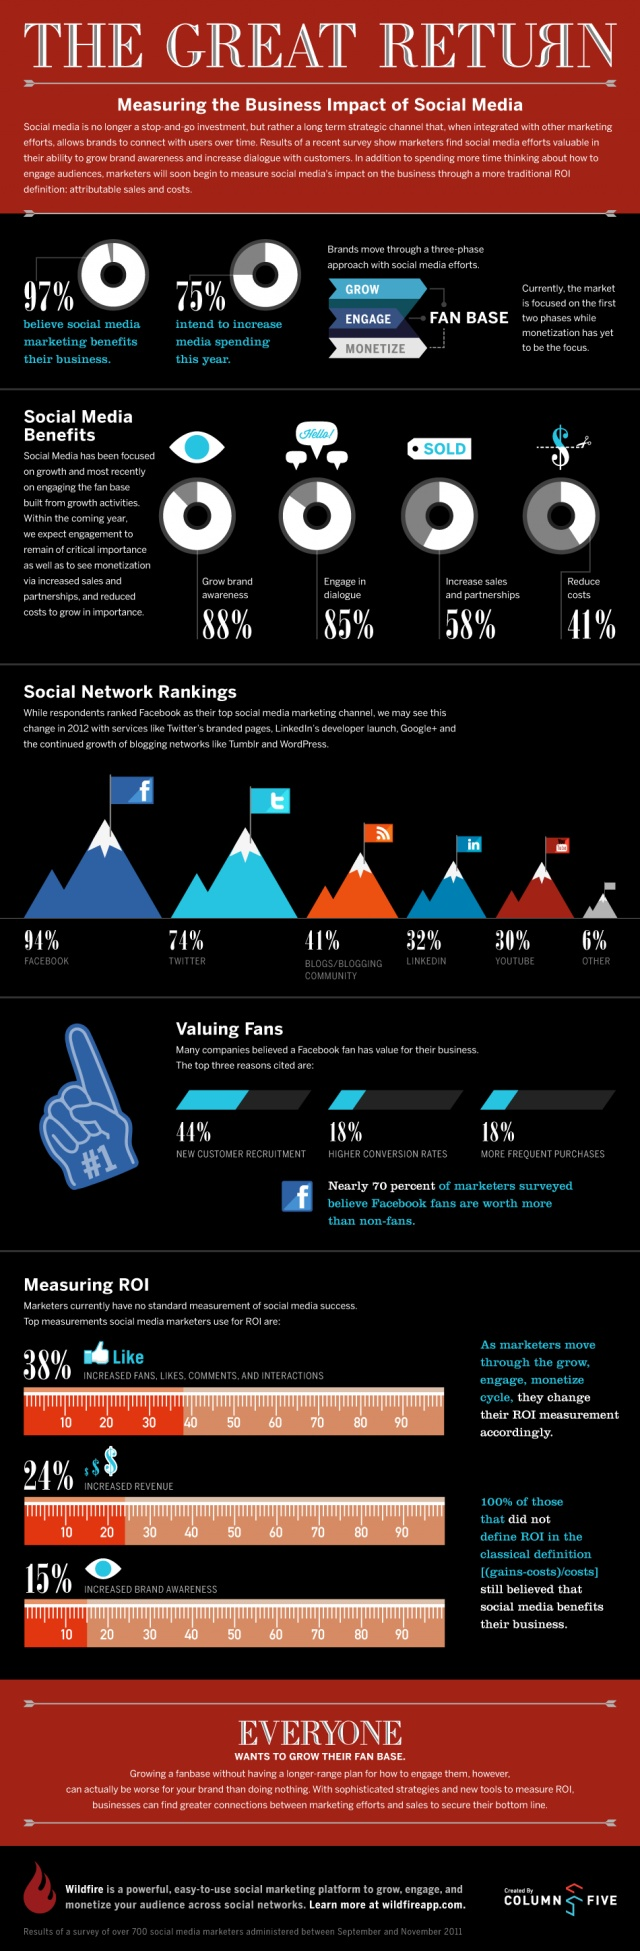 This infographic on social media ROI points out some interesting stats on social media use in marketing. It also demonstrates some of the shortcomings in how companies analyze social media effectiveness.